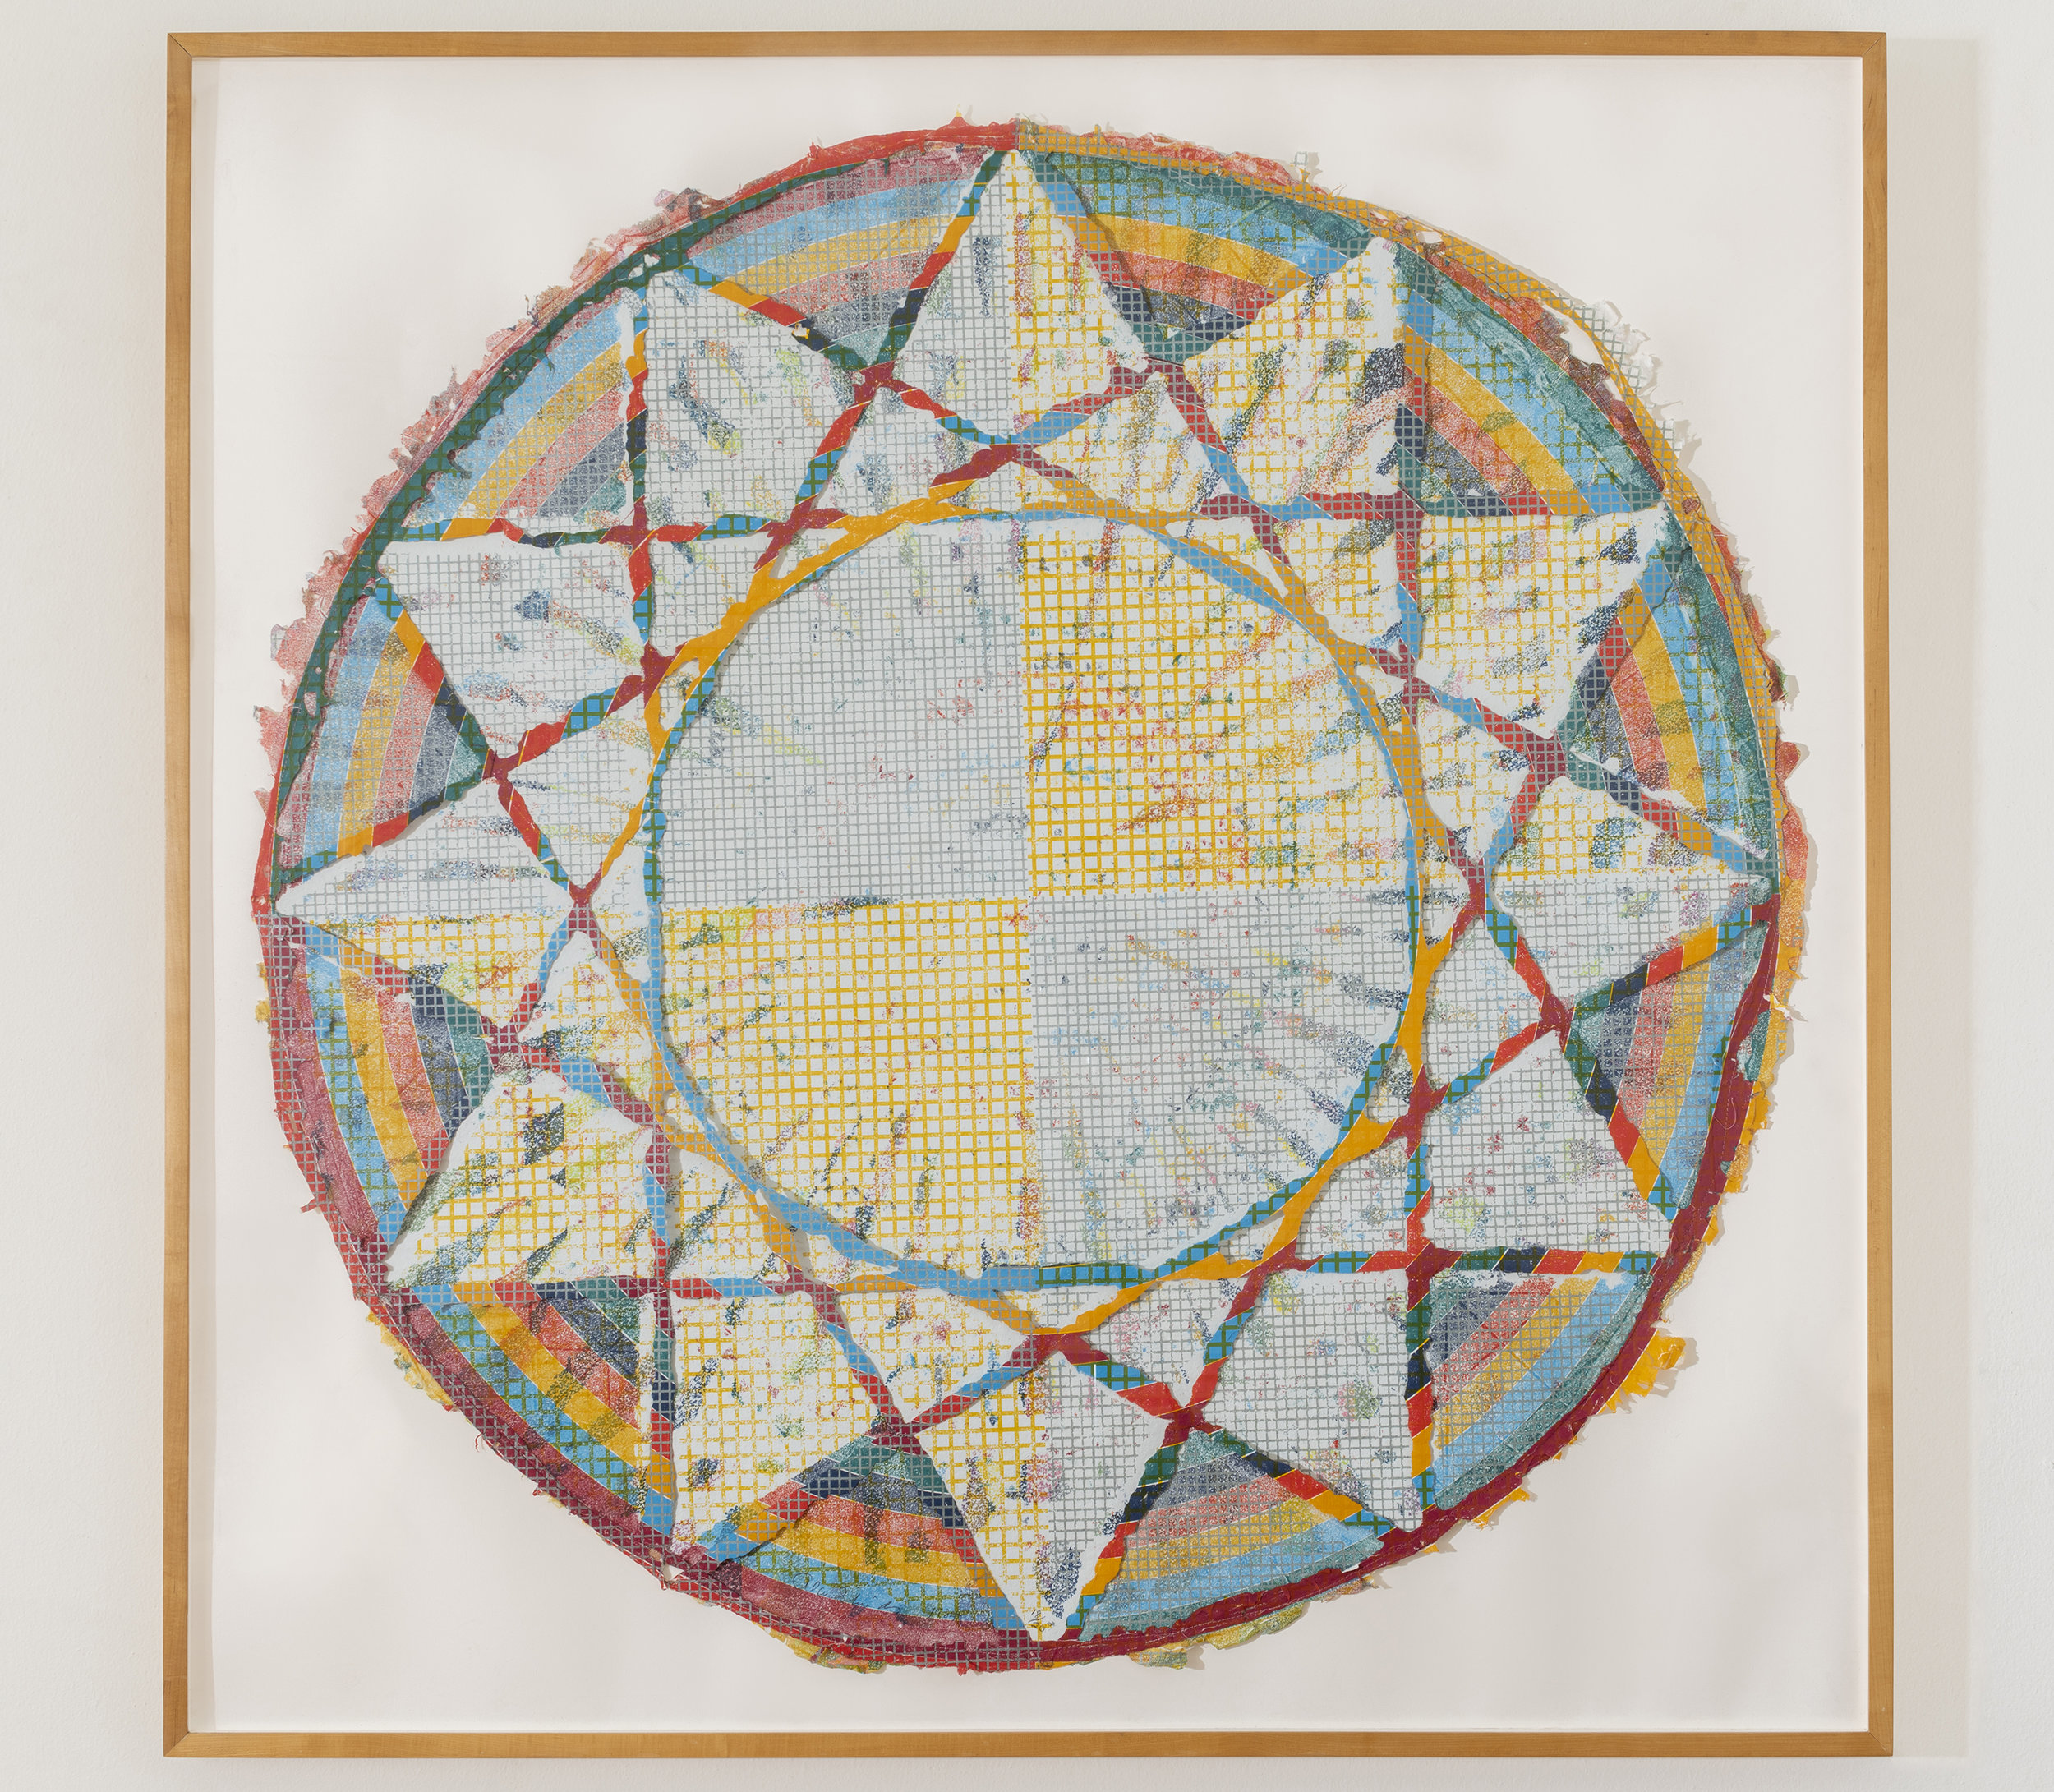 Alan Shields  Equatorial Route , from  The Raggedy Circumnavigation Series     1985 Relief, woodcut, silkscreen, string, stitching, on handmade paper, two layers 47 inches diameter, 52 x 52 inches framed Ed. 18/20